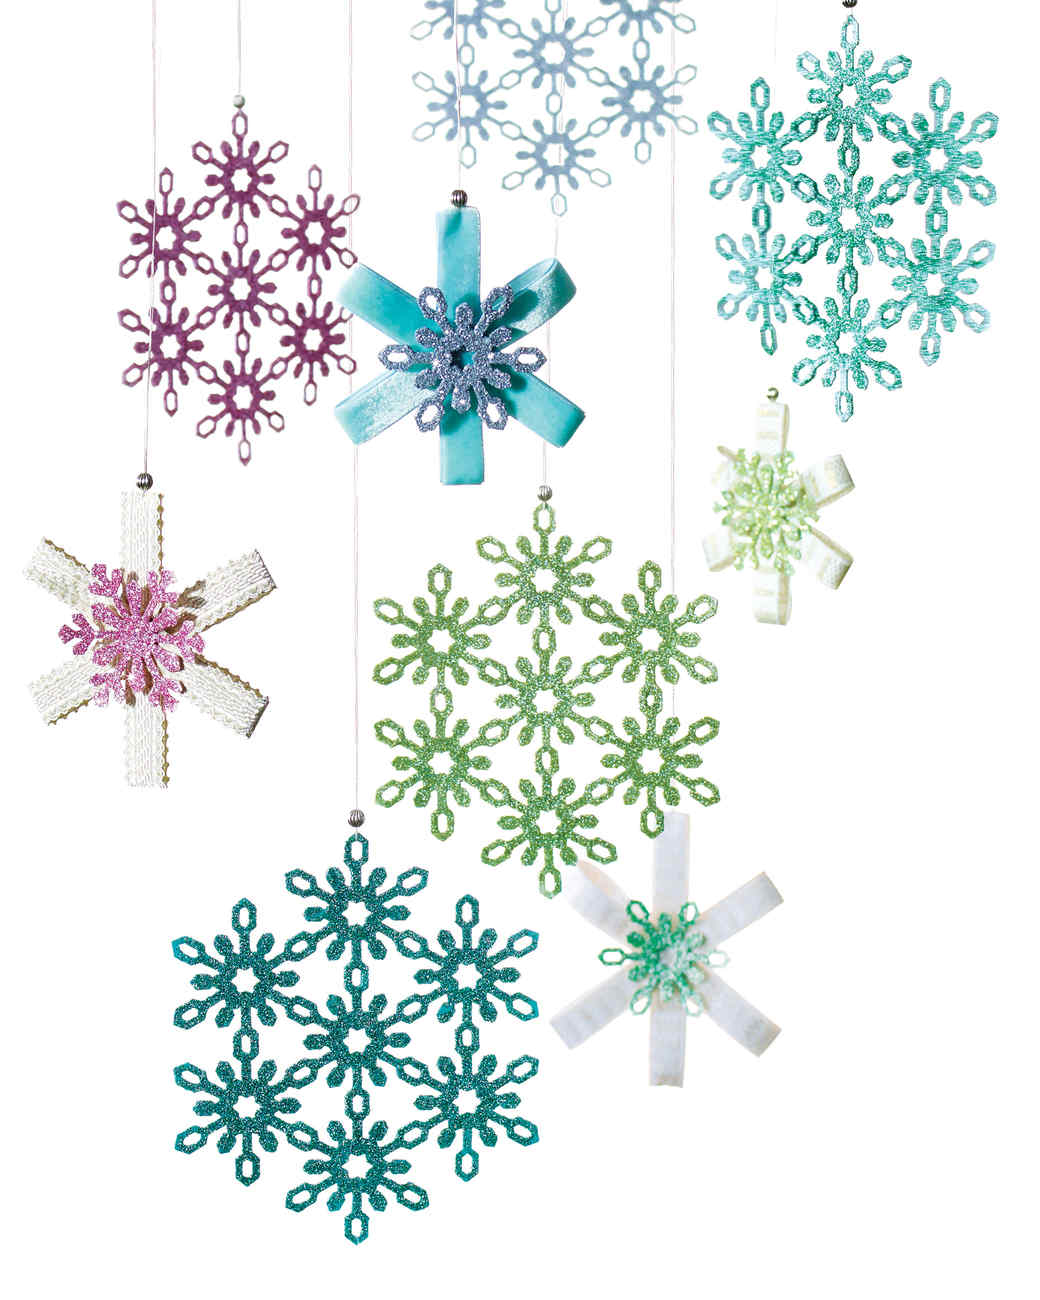 Christmas snowflake ornaments - Eric Pike S Glittered Snowflake Ornaments